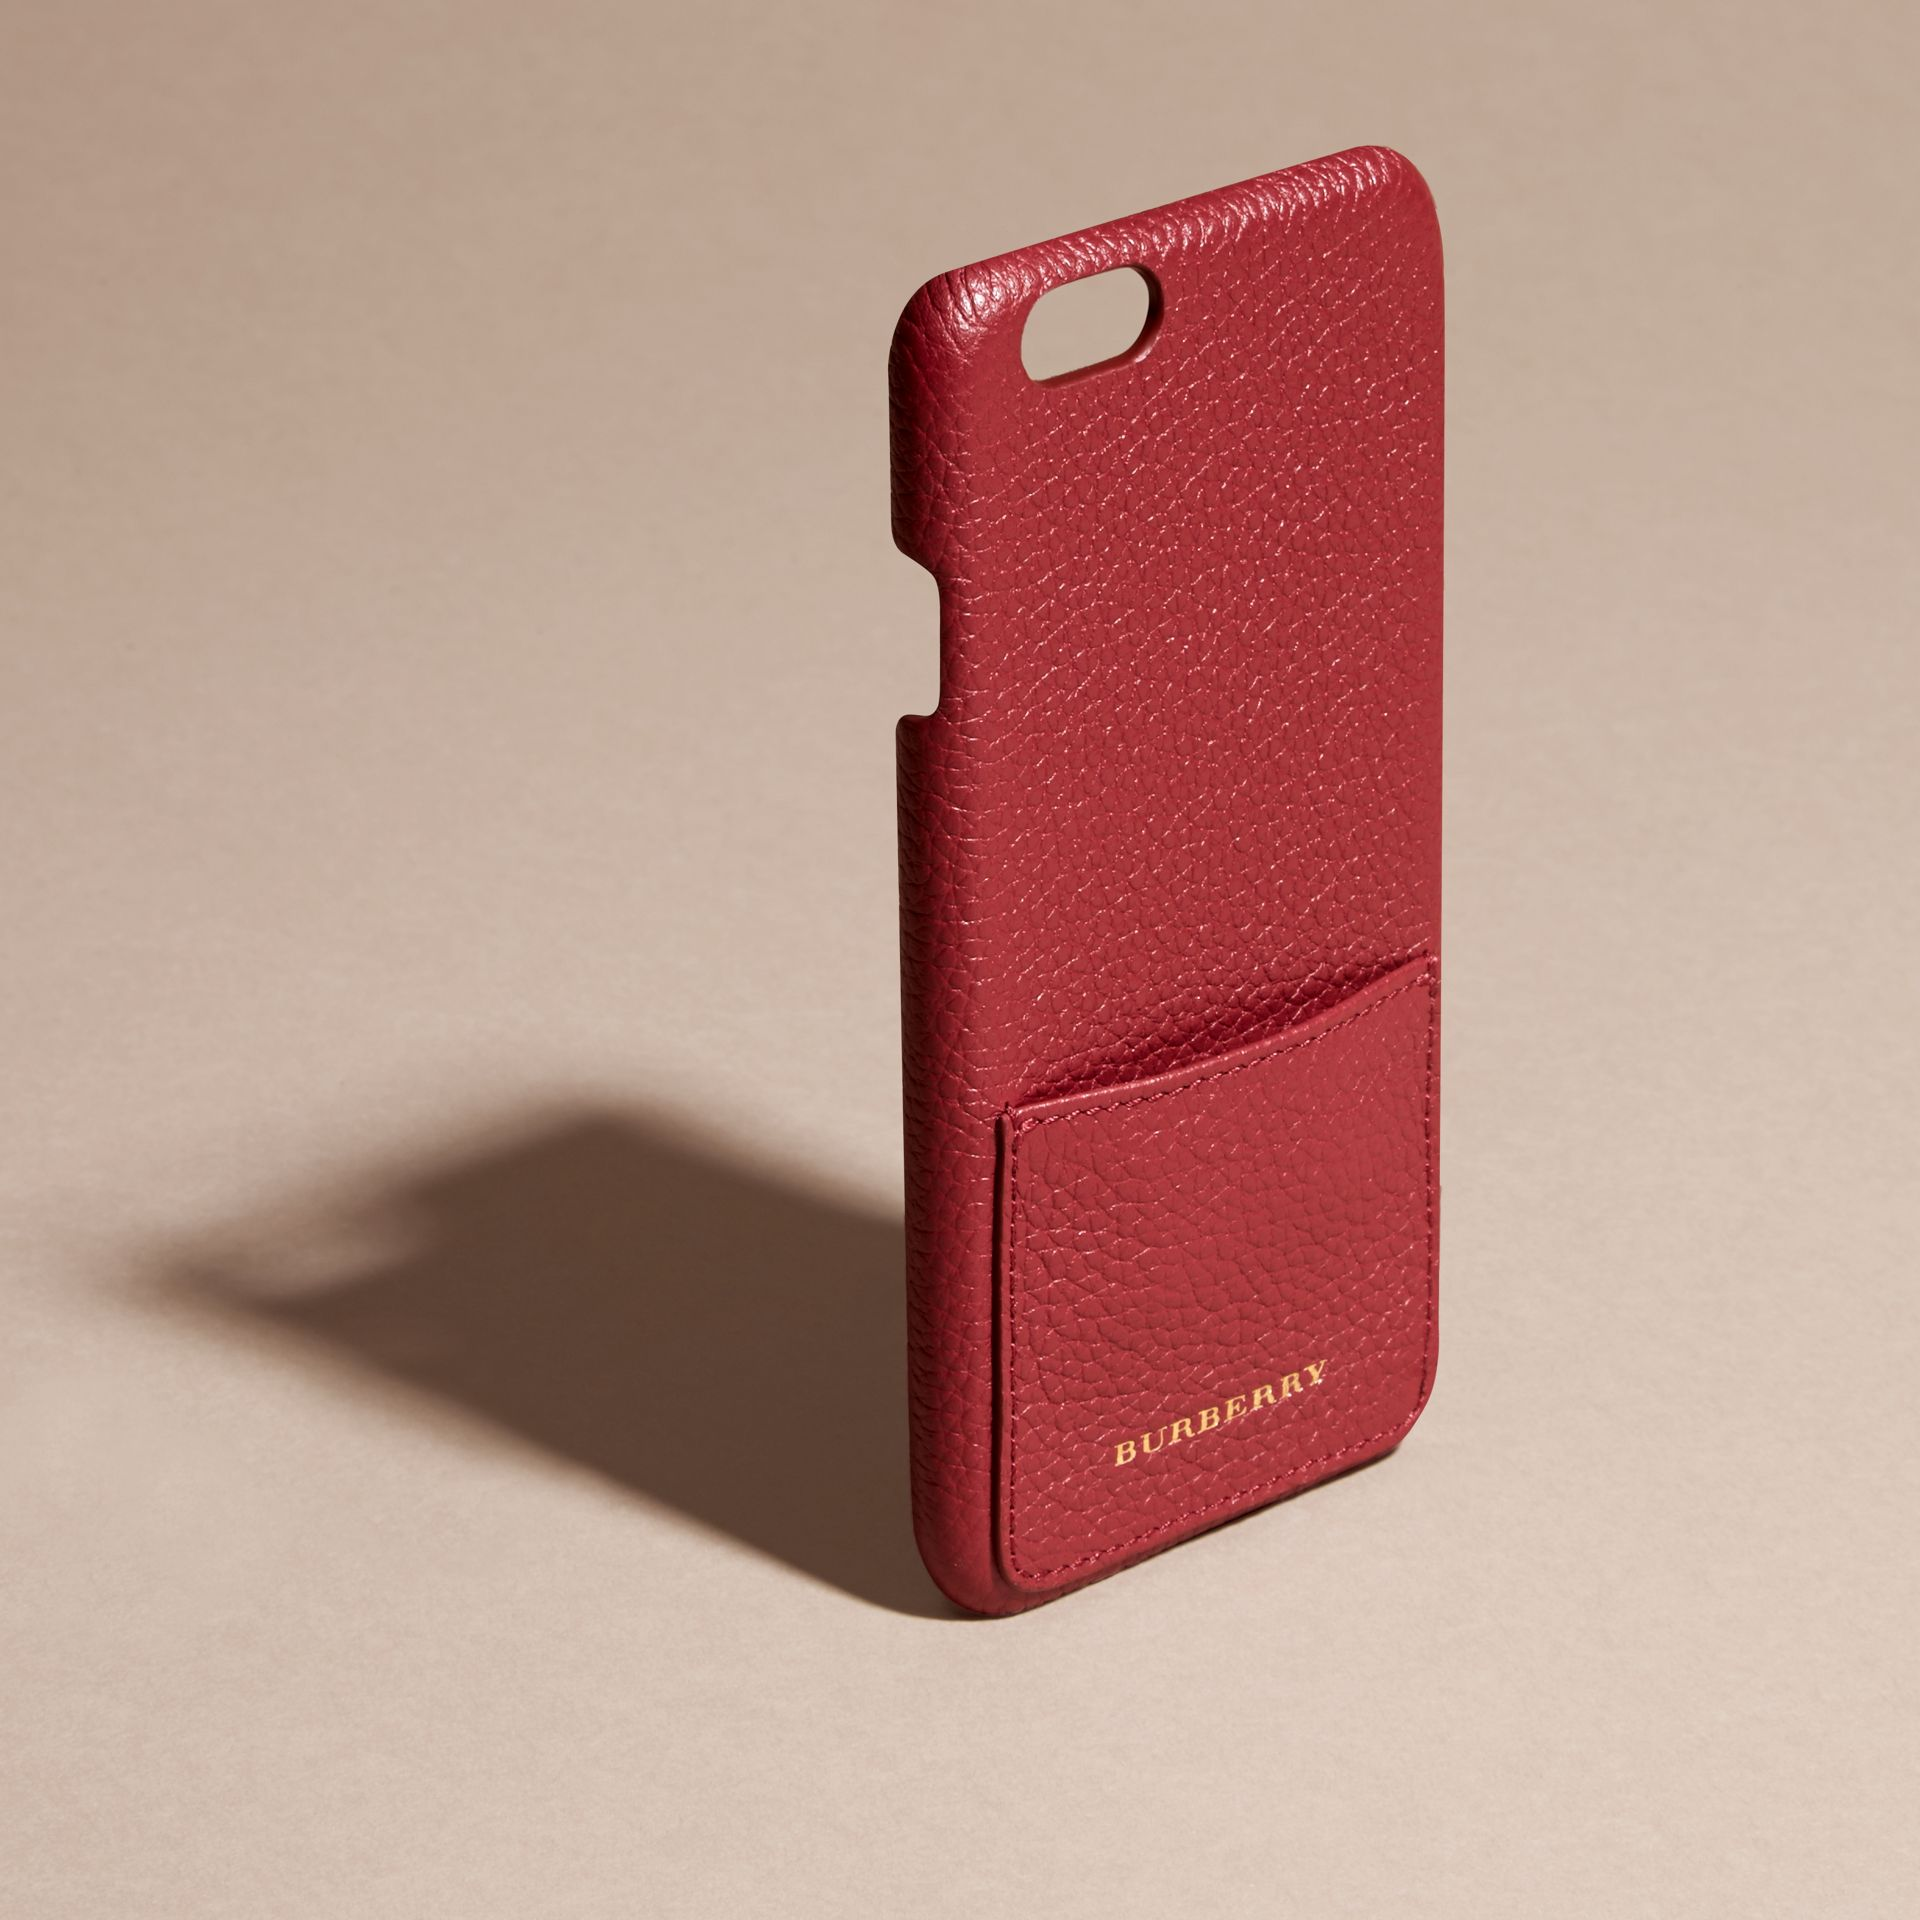 Étui pour iPhone 6 en cuir grené Rouge Parade - photo de la galerie 3